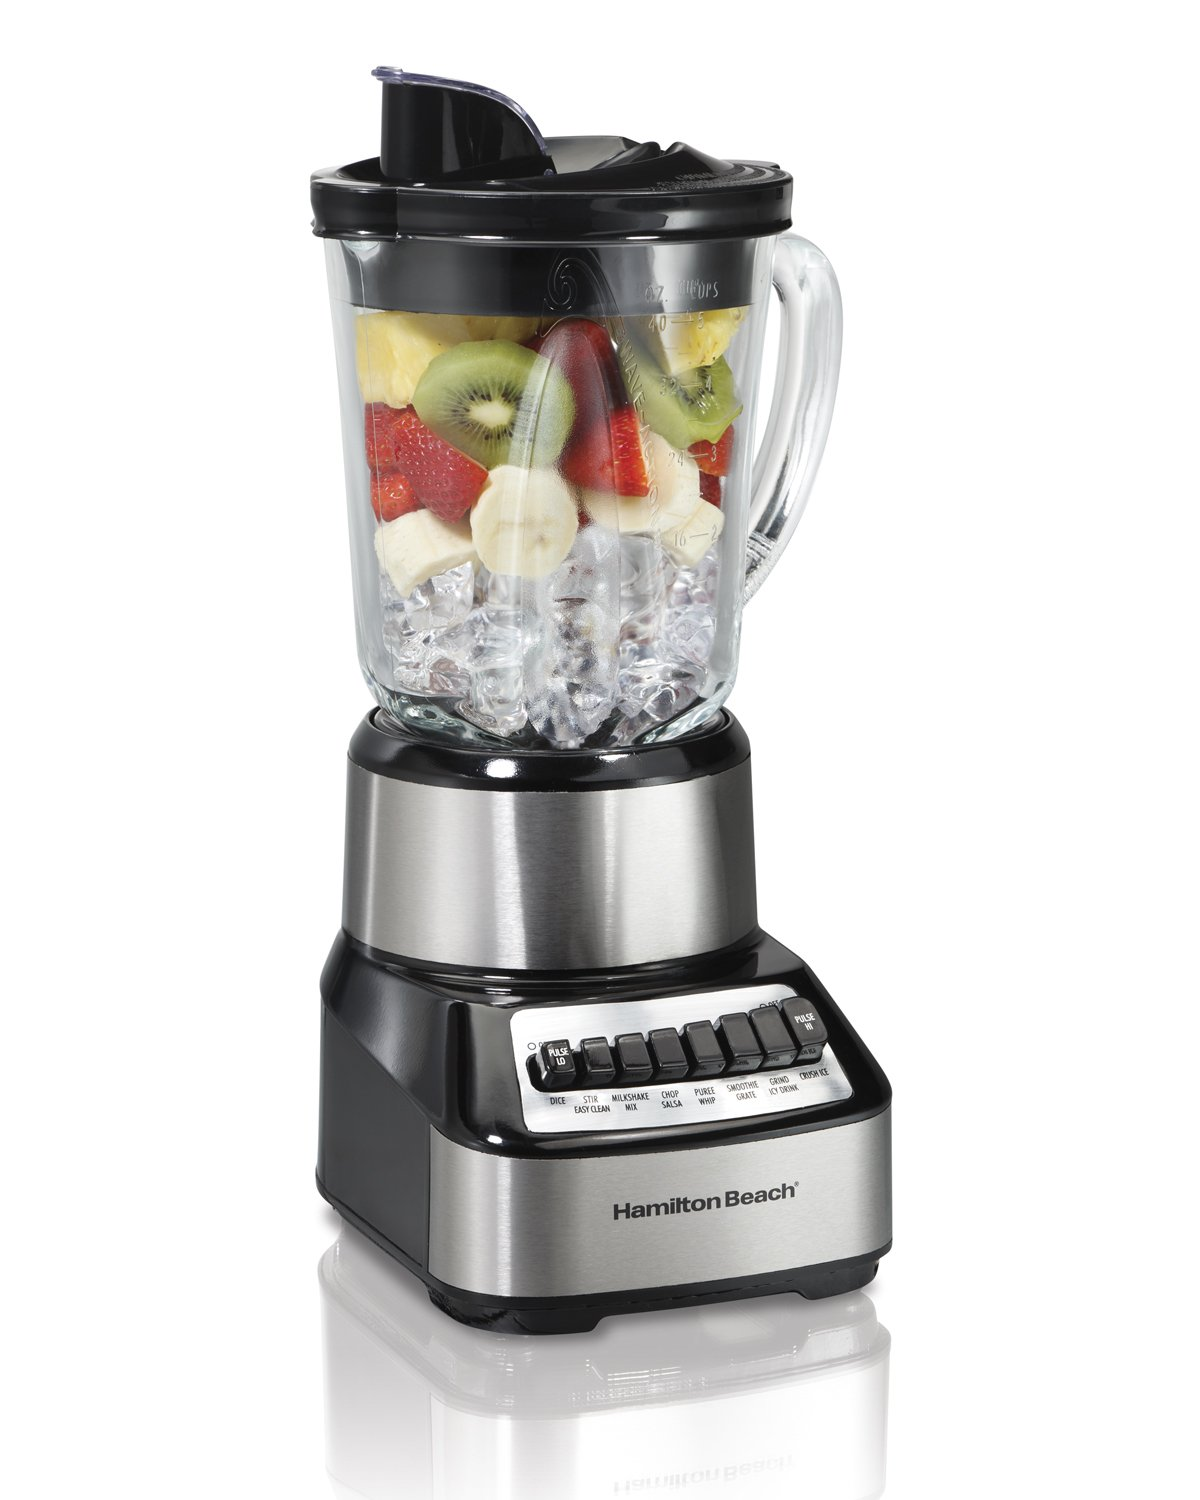 Hamilton Beach Wave Crusher Multi-Function Blender with 14 Speeds & 40 oz Glass Jar, Silver (54221)